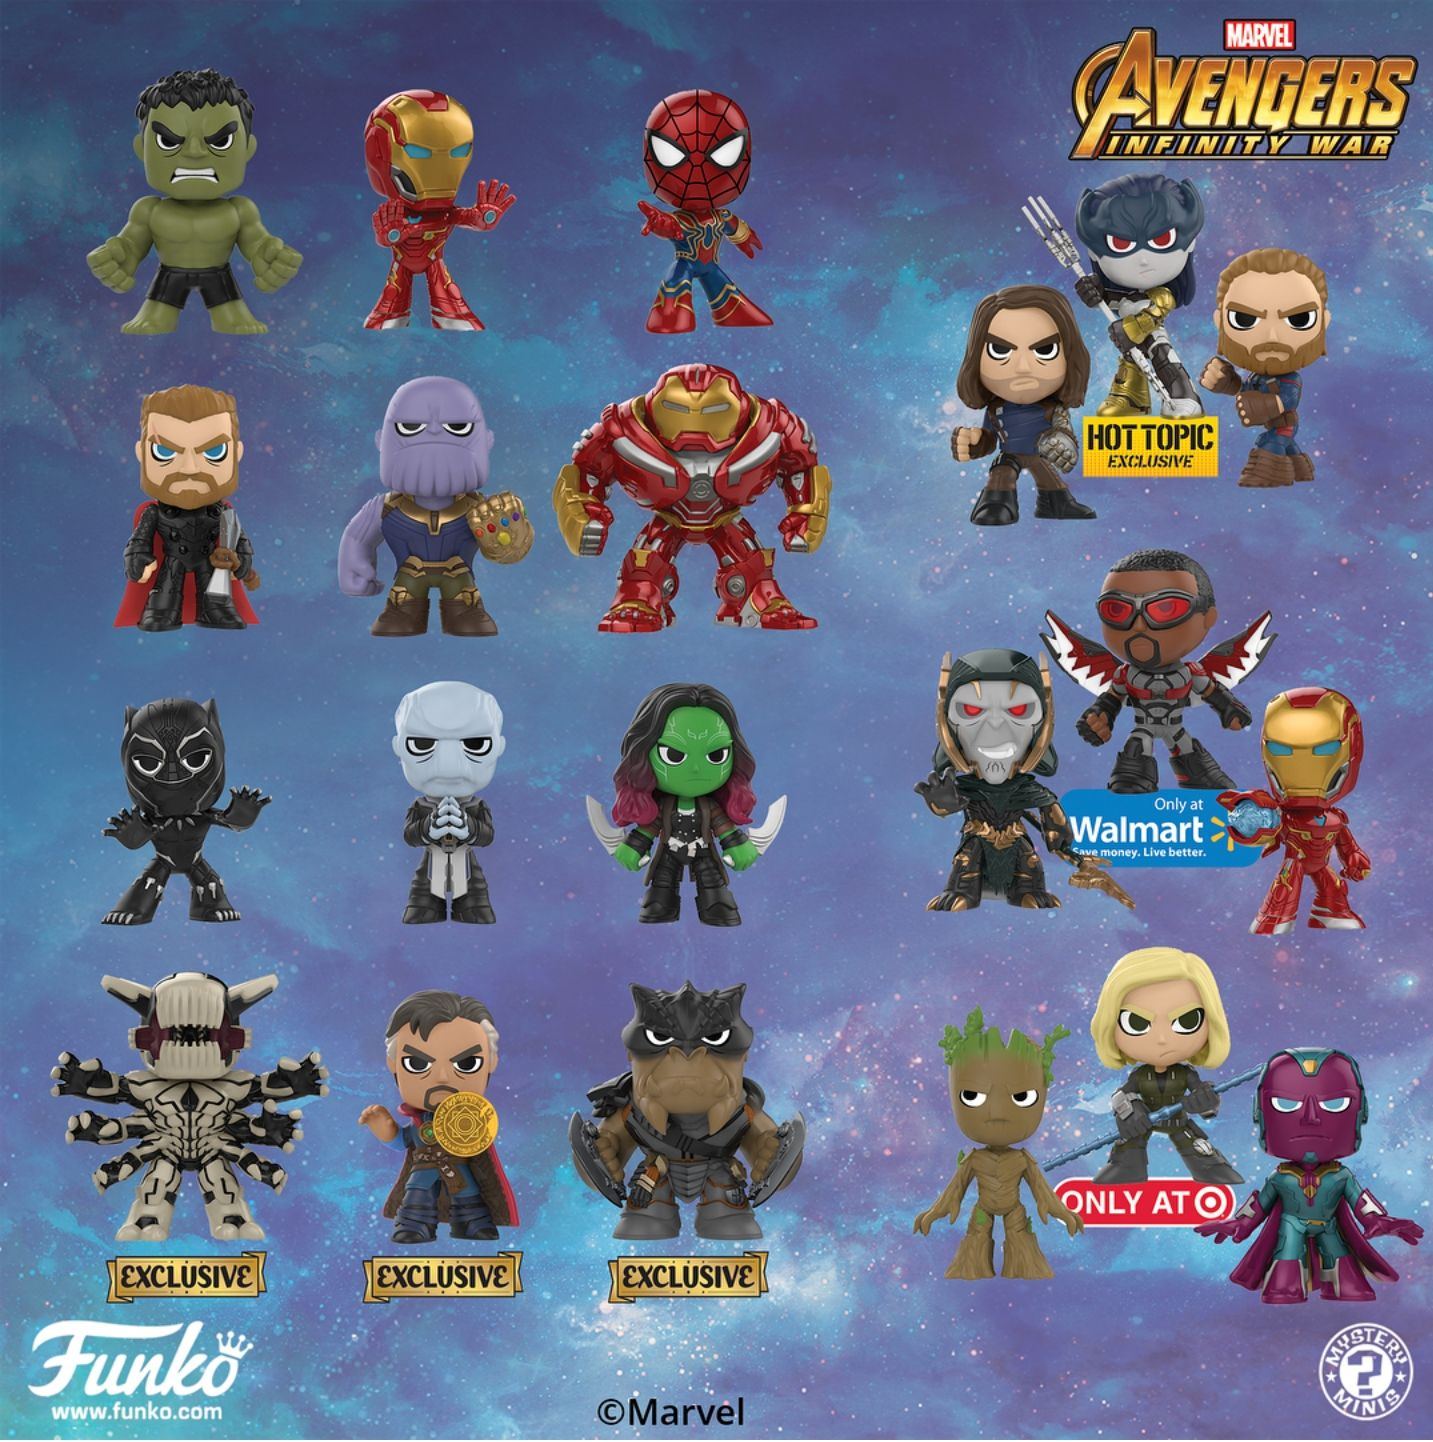 Funko Has A Ton Of New Pops For Avengers Infinity War Funko Funko Pop Toys Pop Vinyl Figures